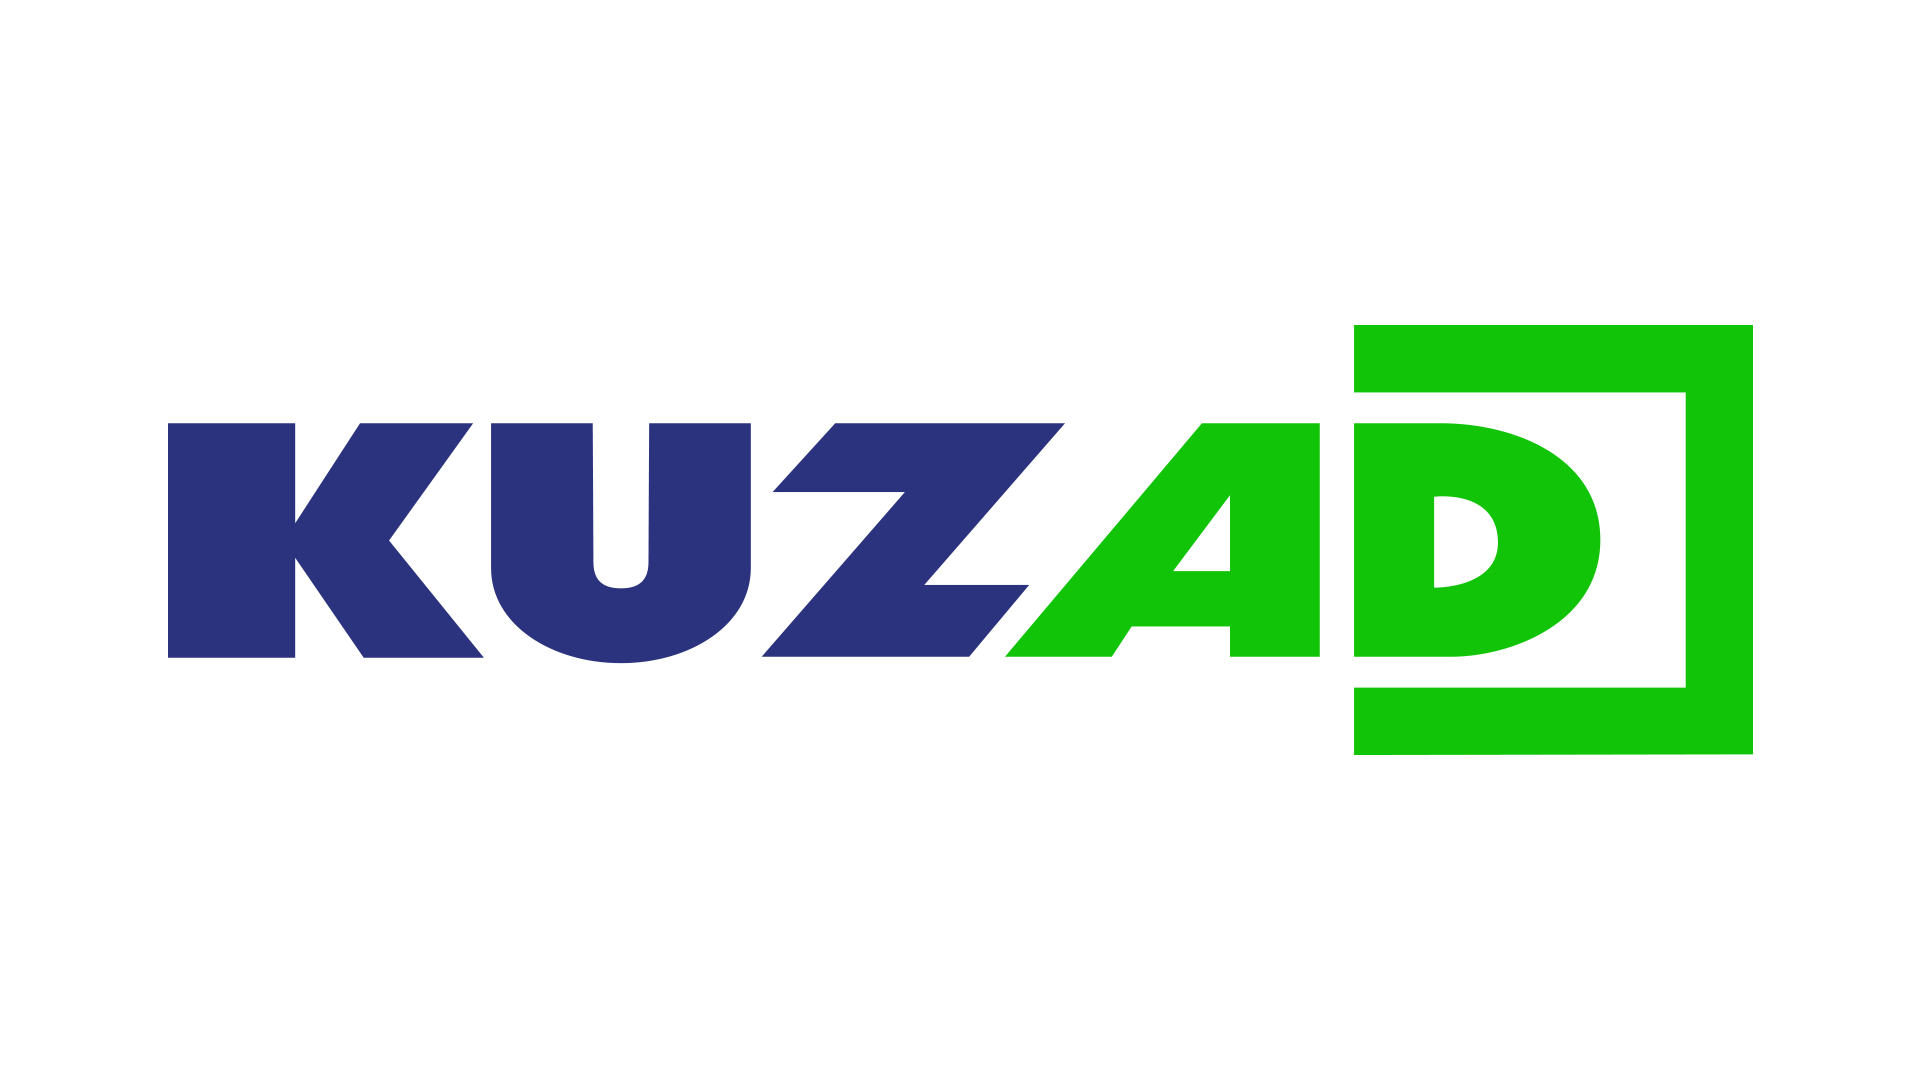 KUZAD Technologies, Inc Introduces KUZAD.com to Disrupt the Status Quo By Helping Merchants Verify the Credibility of Clients